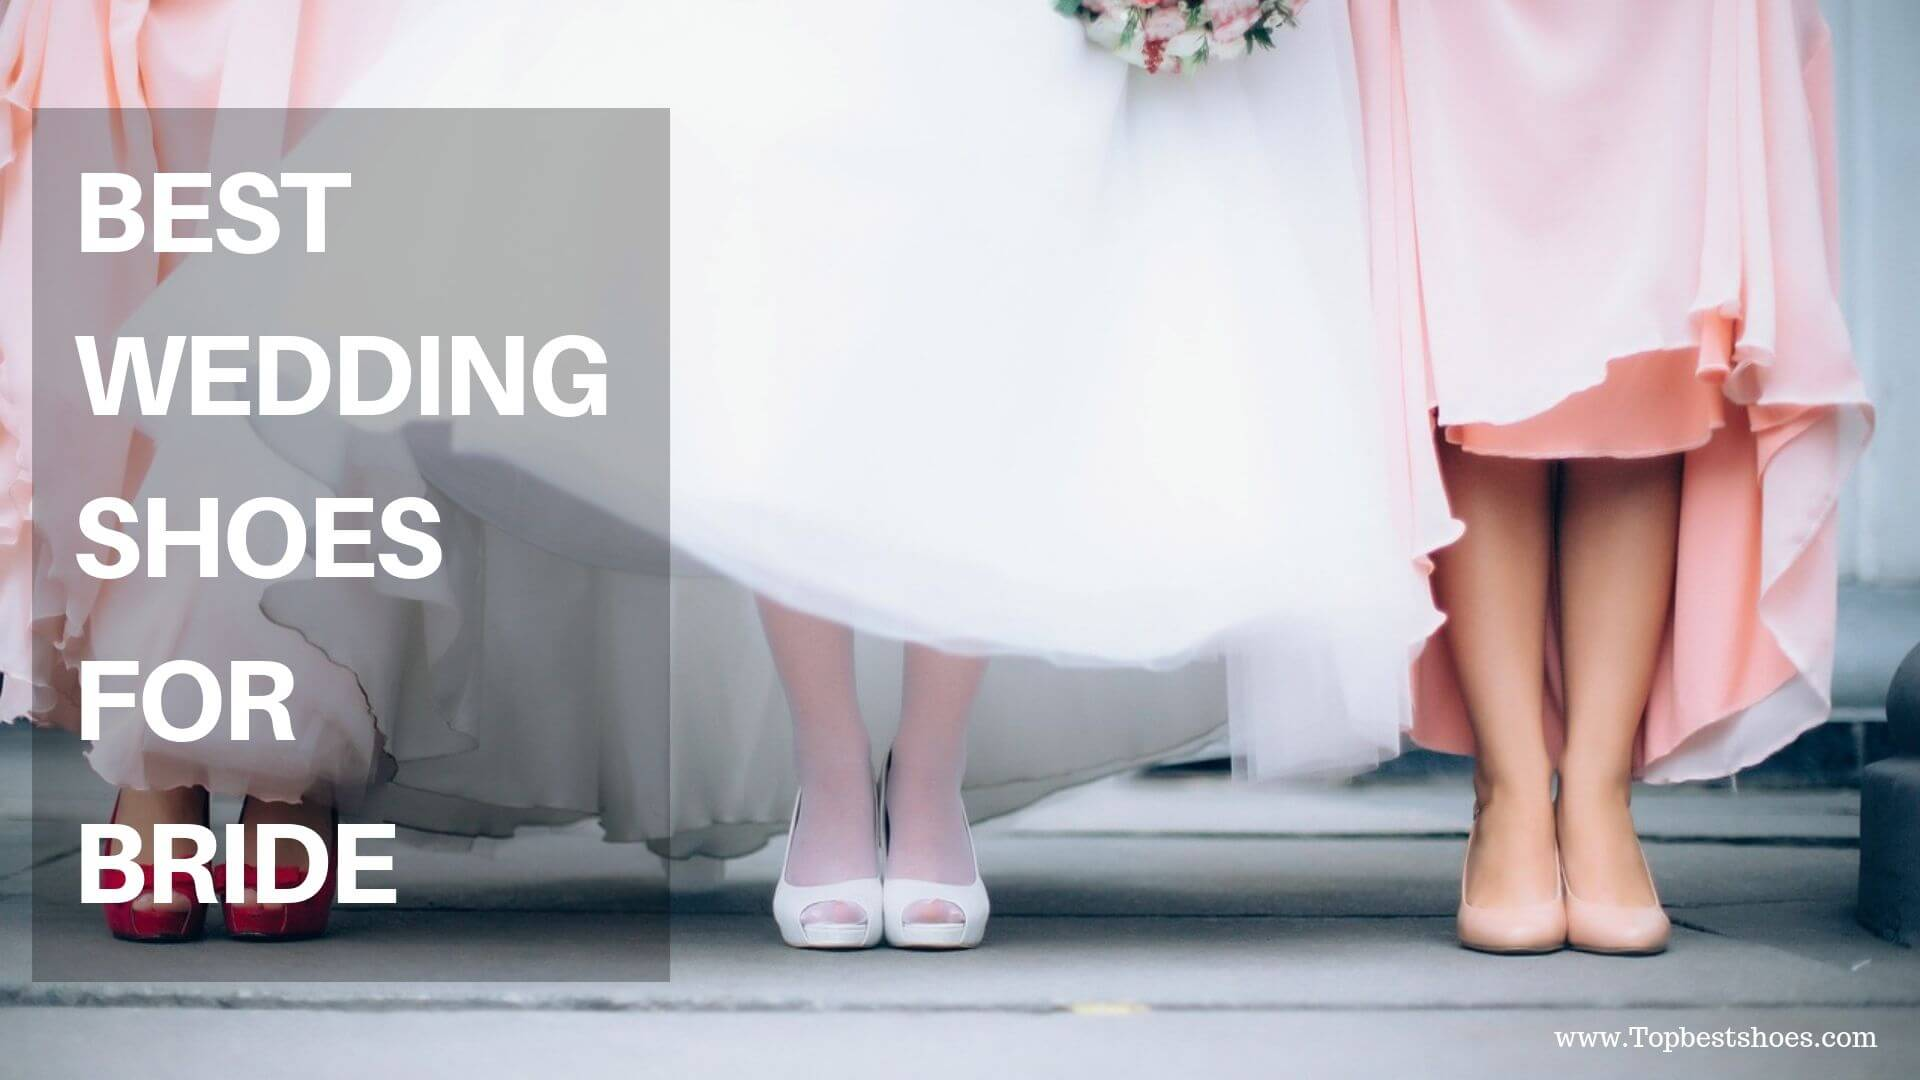 Top 10 Best Wedding Shoes For Bride In India   2019